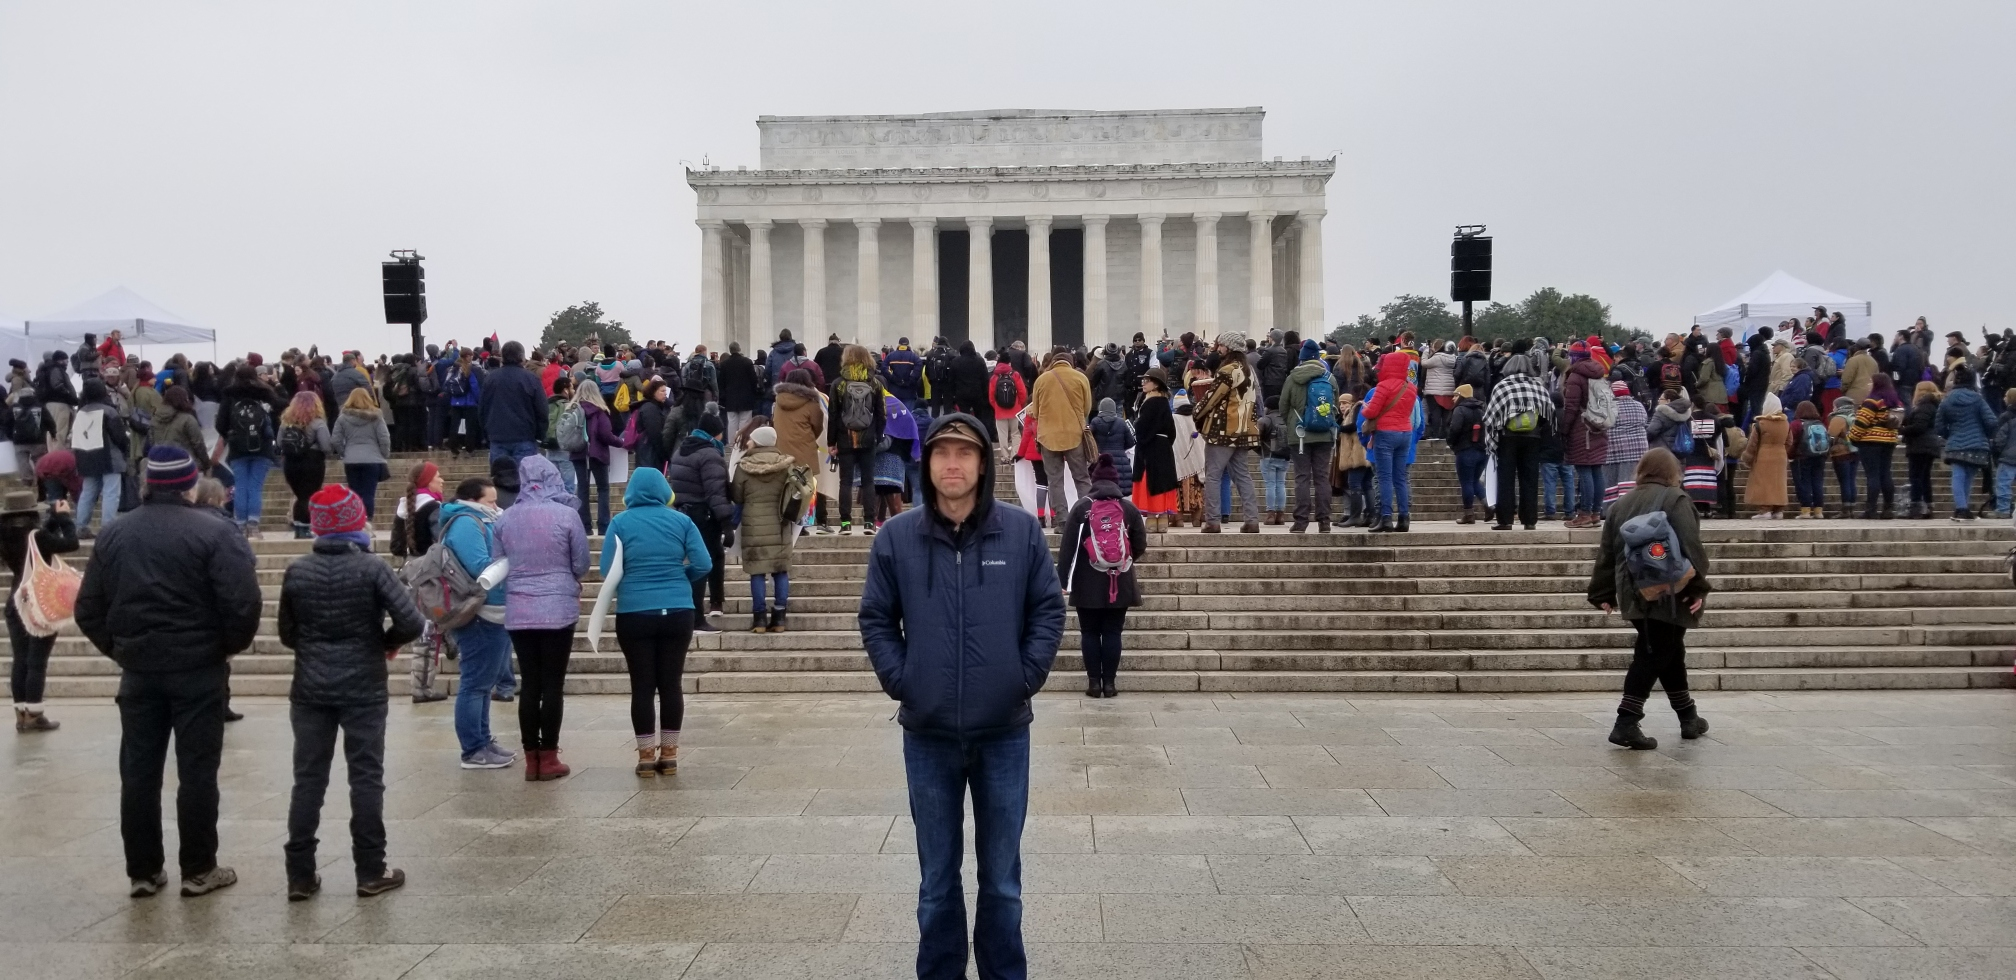 Matt Halvorson stands in front of the Lincoln Memorial during the rally that followed the first Indigenous Peoples March in Washington DC on Jan. 18, 2019. Photo by Nic Cochran.